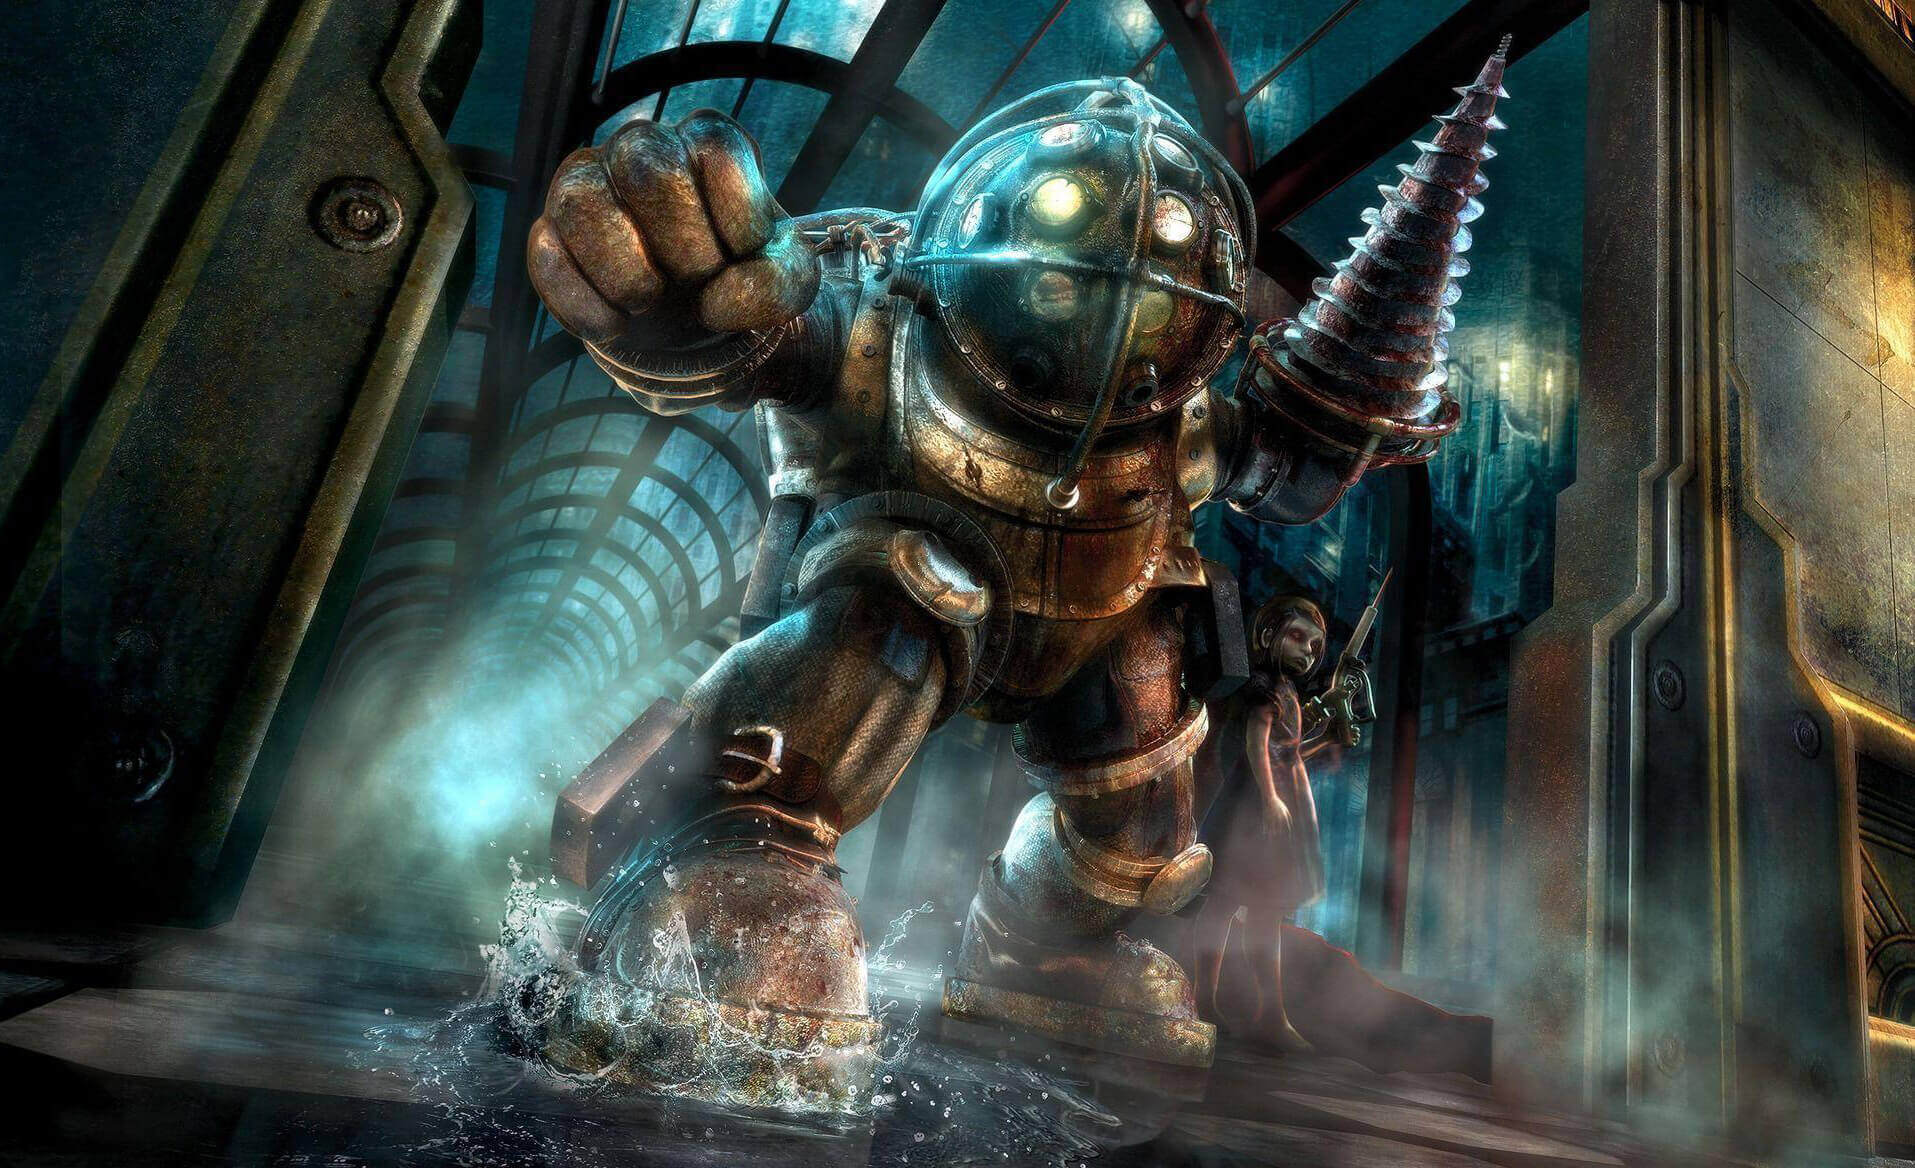 2K favorites BioShock, Borderlands and XCOM 2 are headed to the Nintendo Switch